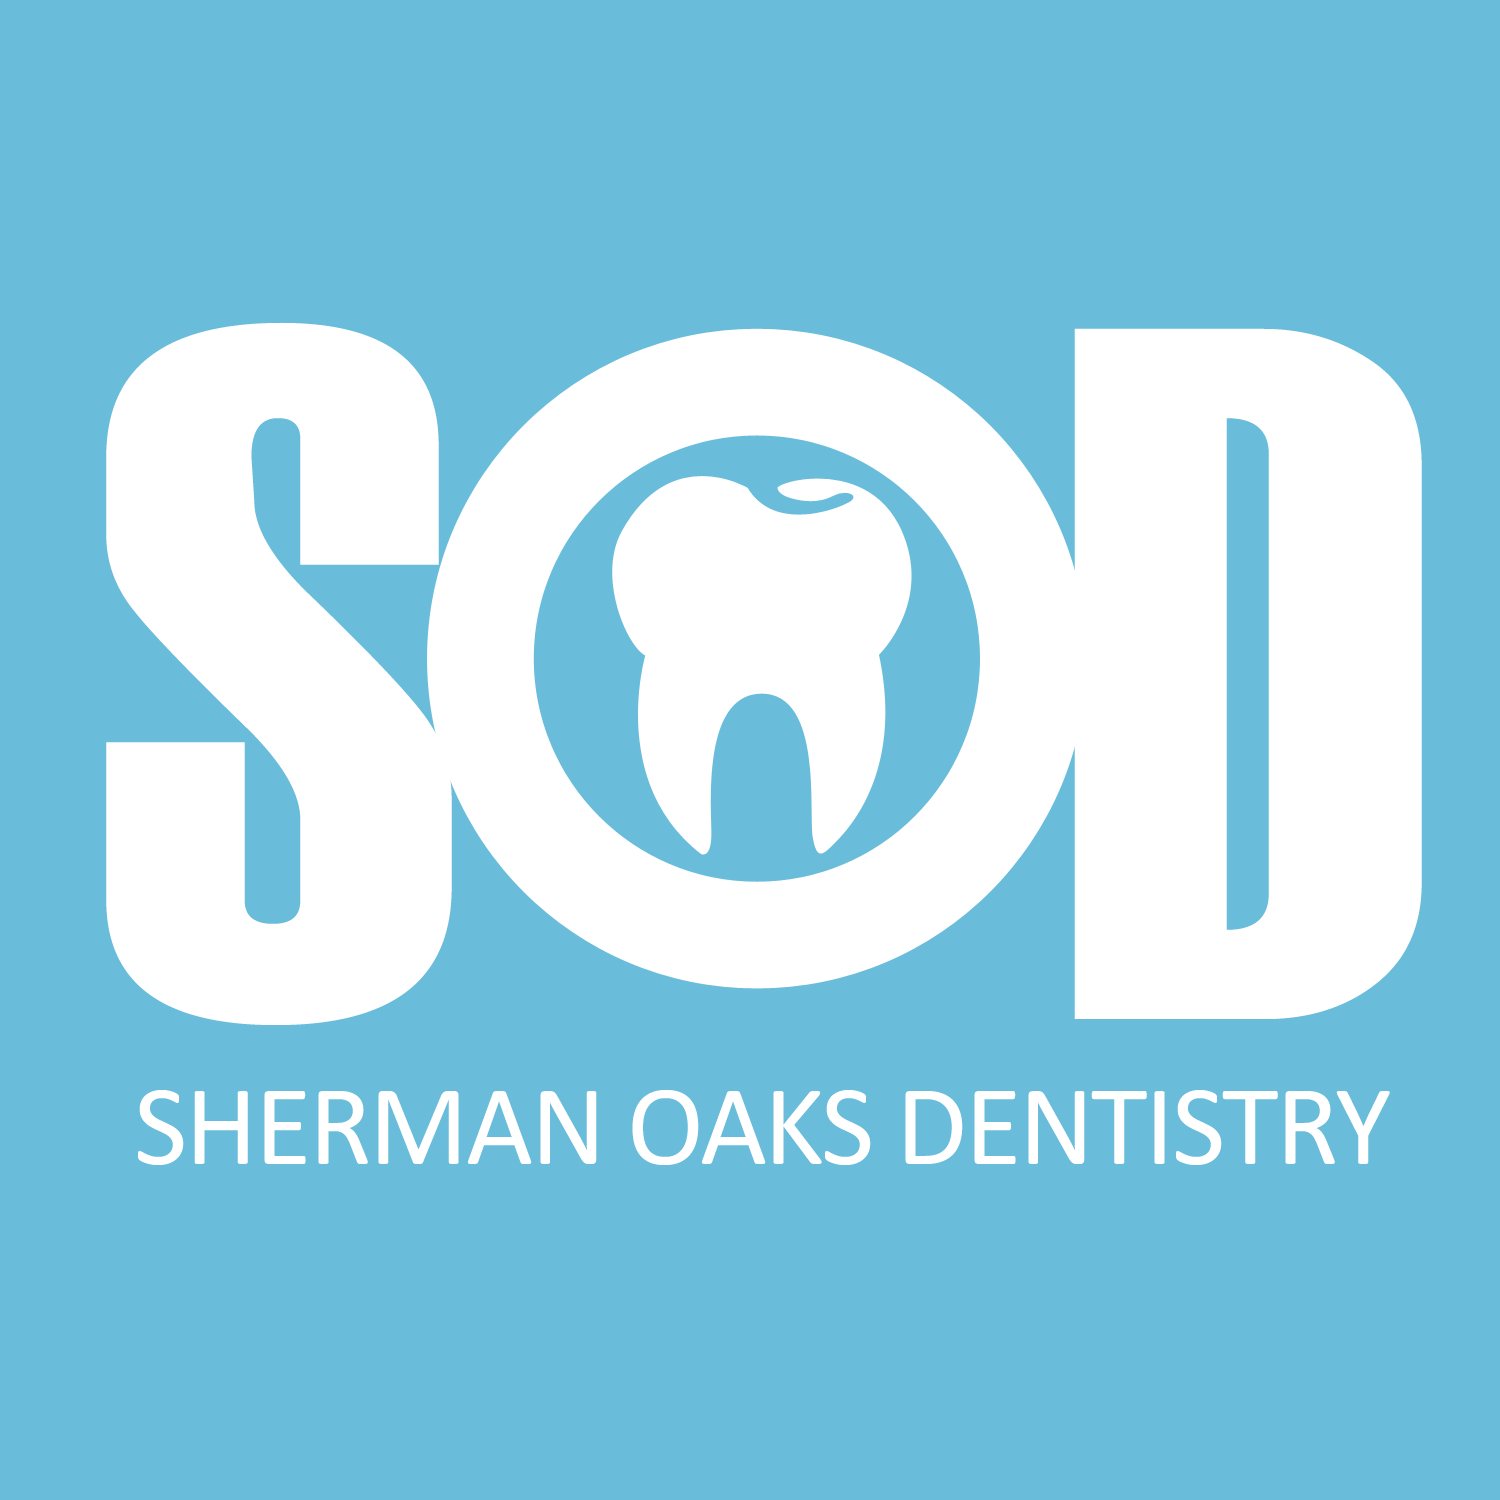 image of the Sherman Oaks Dentistry